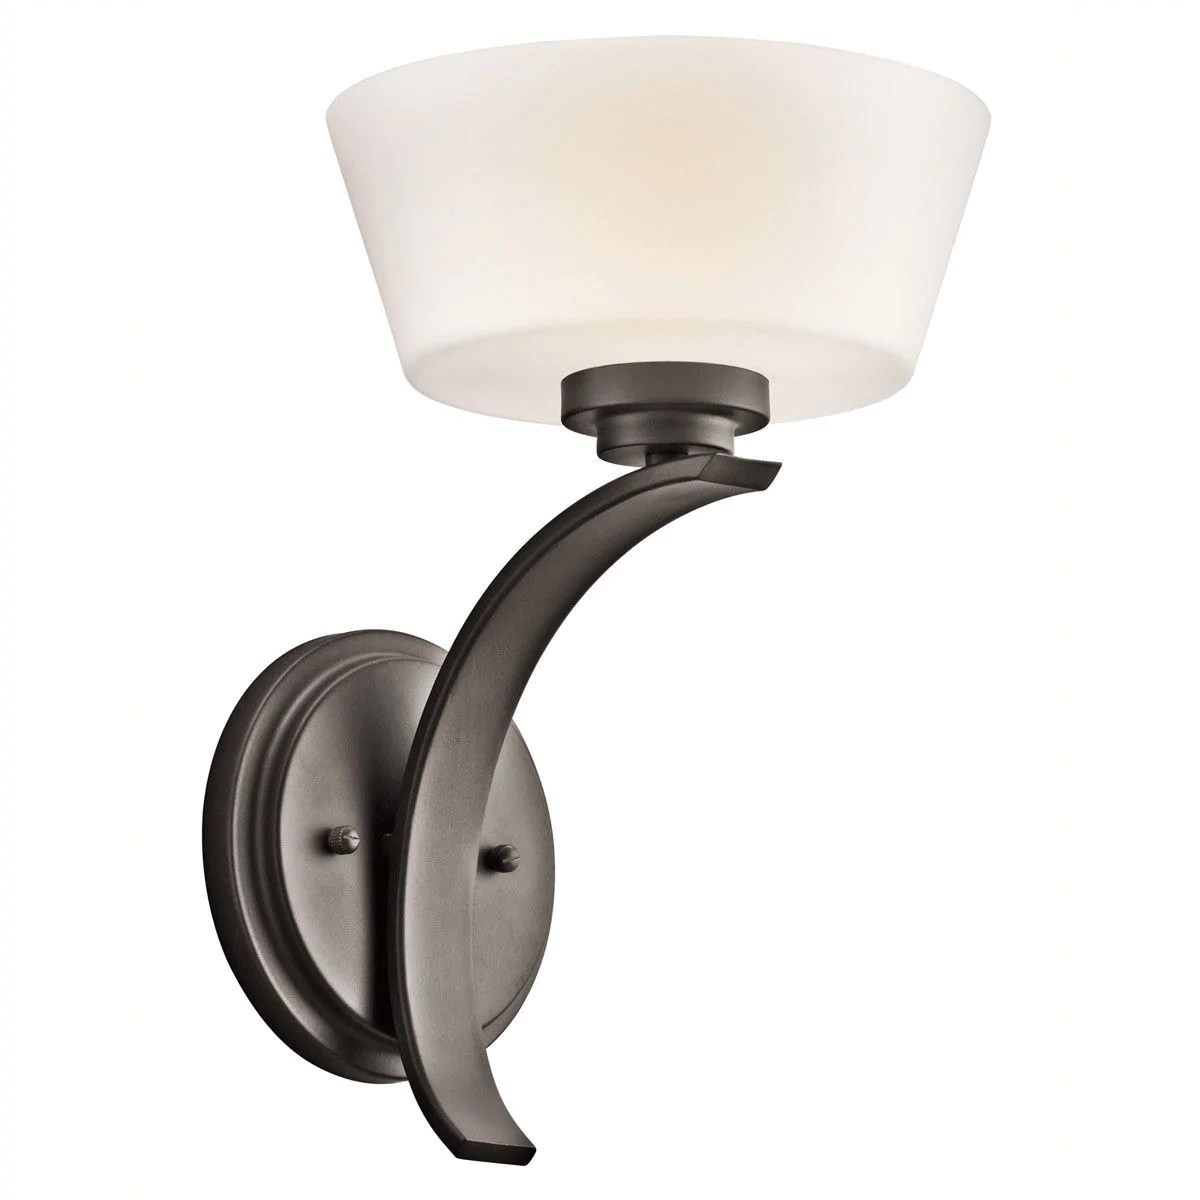 Aztec 37951 by Kichler Lighting Rise Collection One Light ... on Discount Wall Sconces id=13284